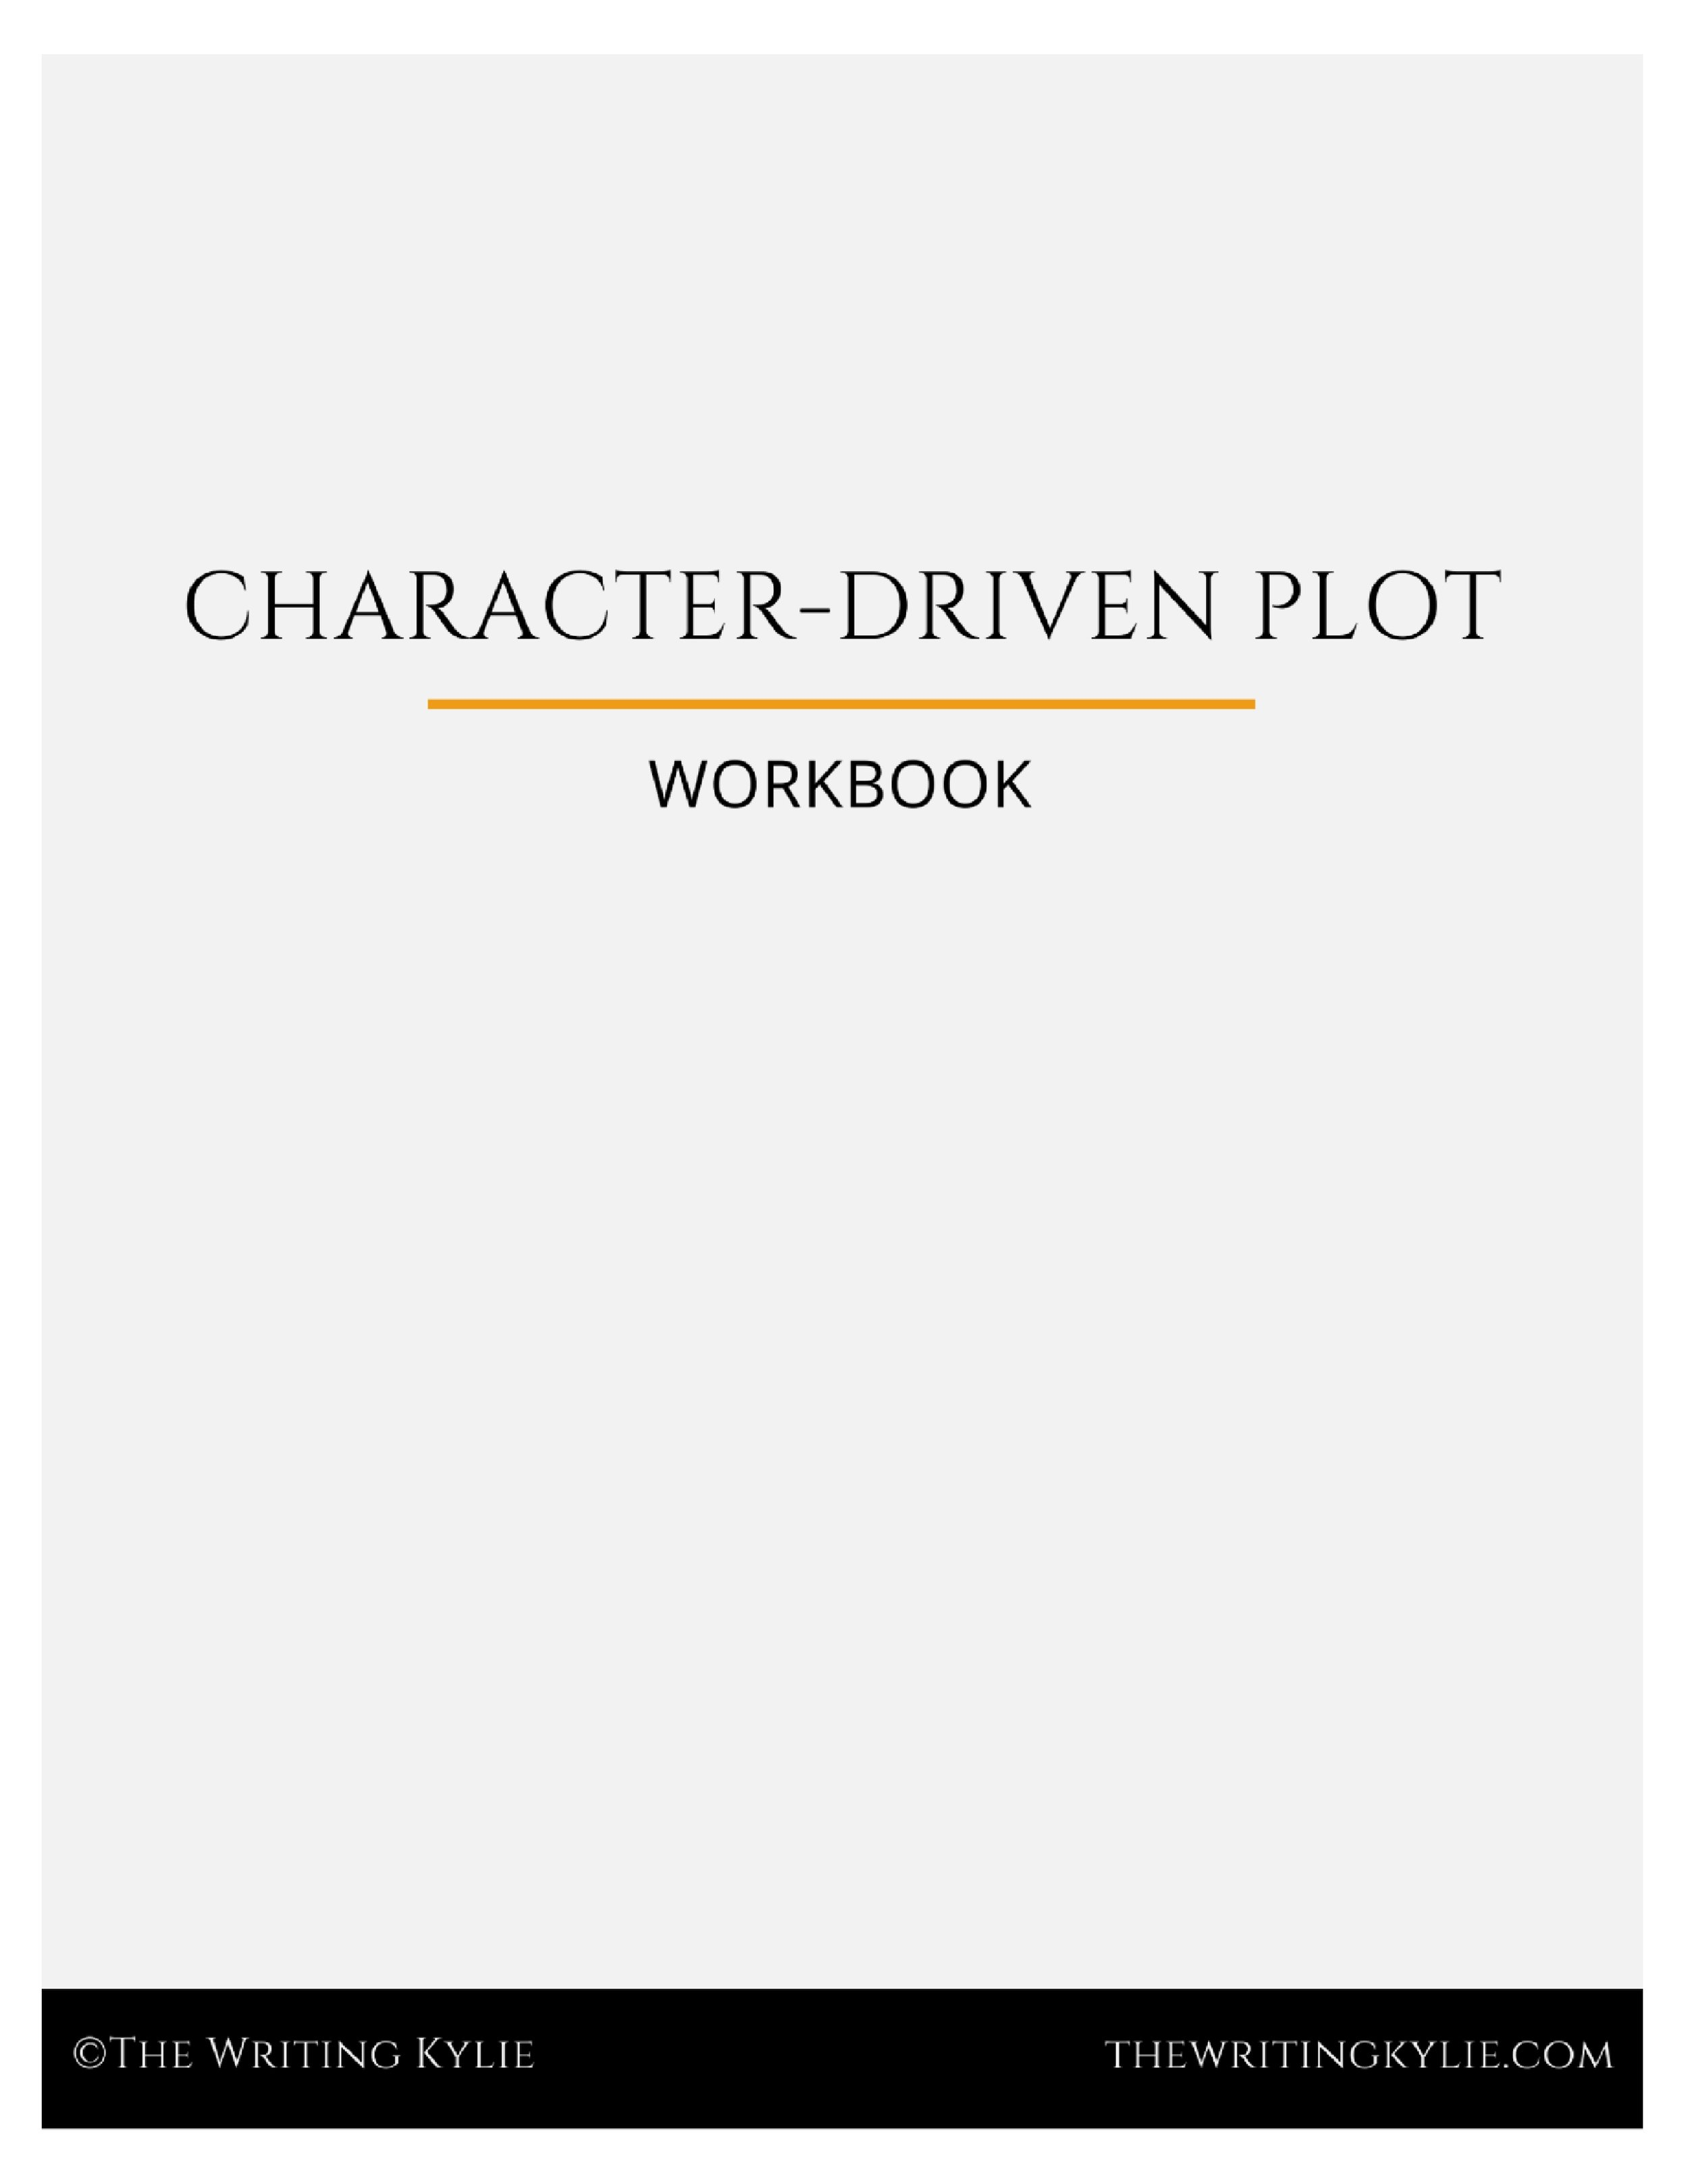 Download the  FREE  Character-Driven Plot Template!